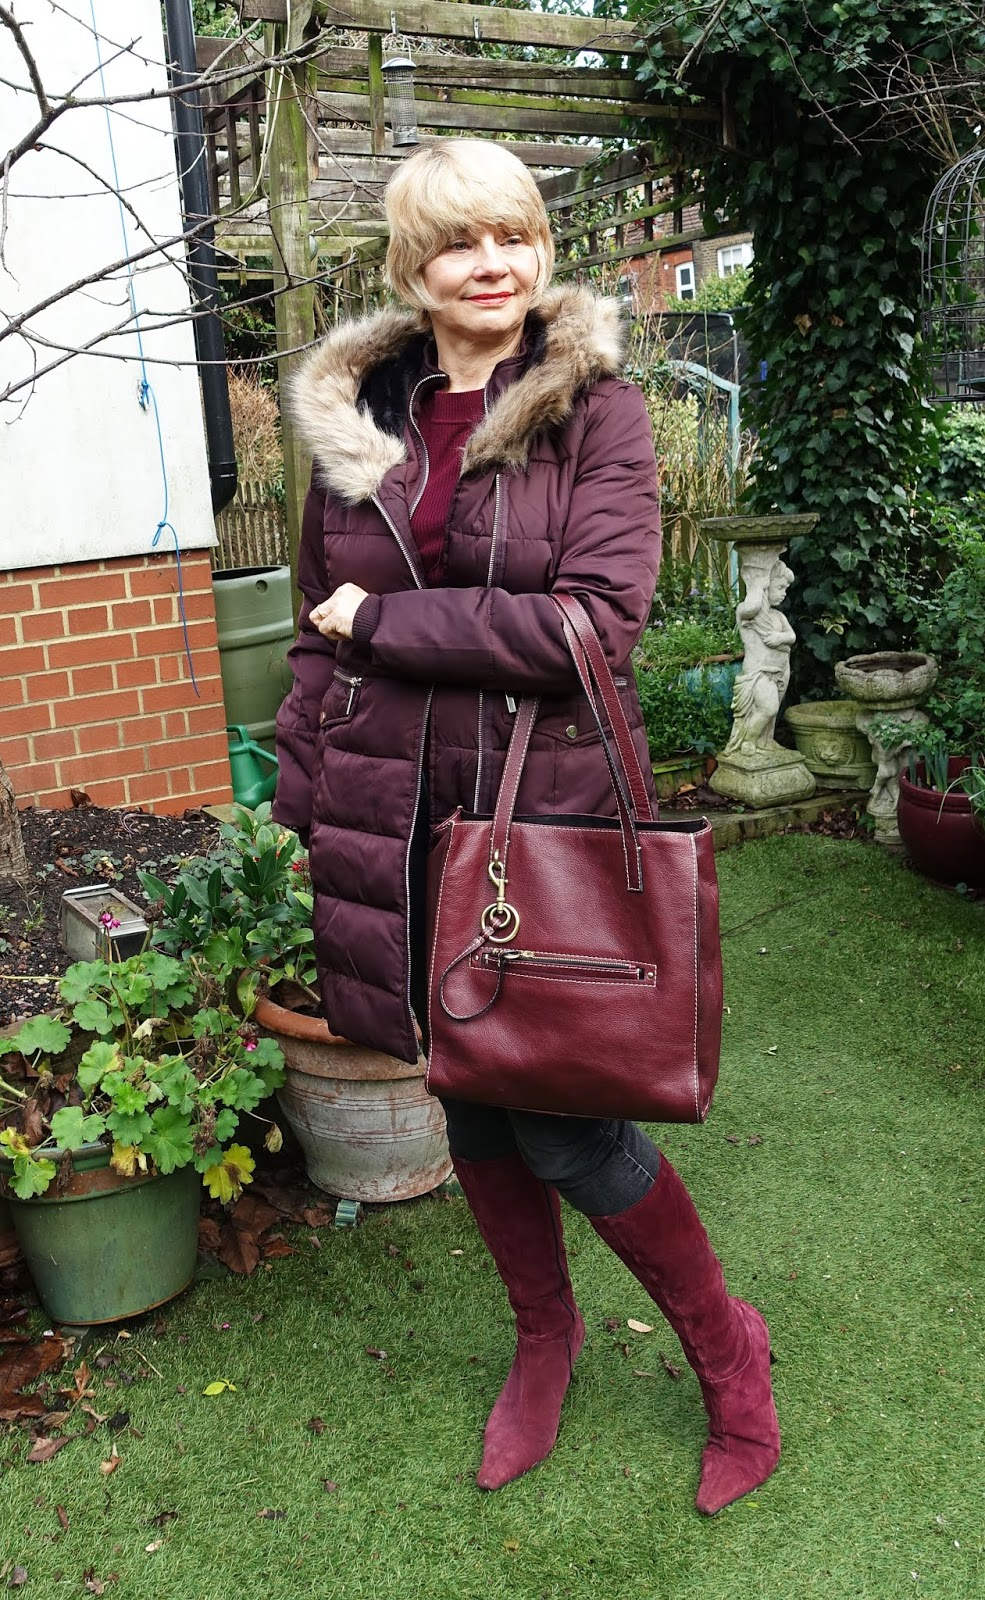 Burgundy fur trimmed parka from Oasis worn with burgundy suede boots and jeans.